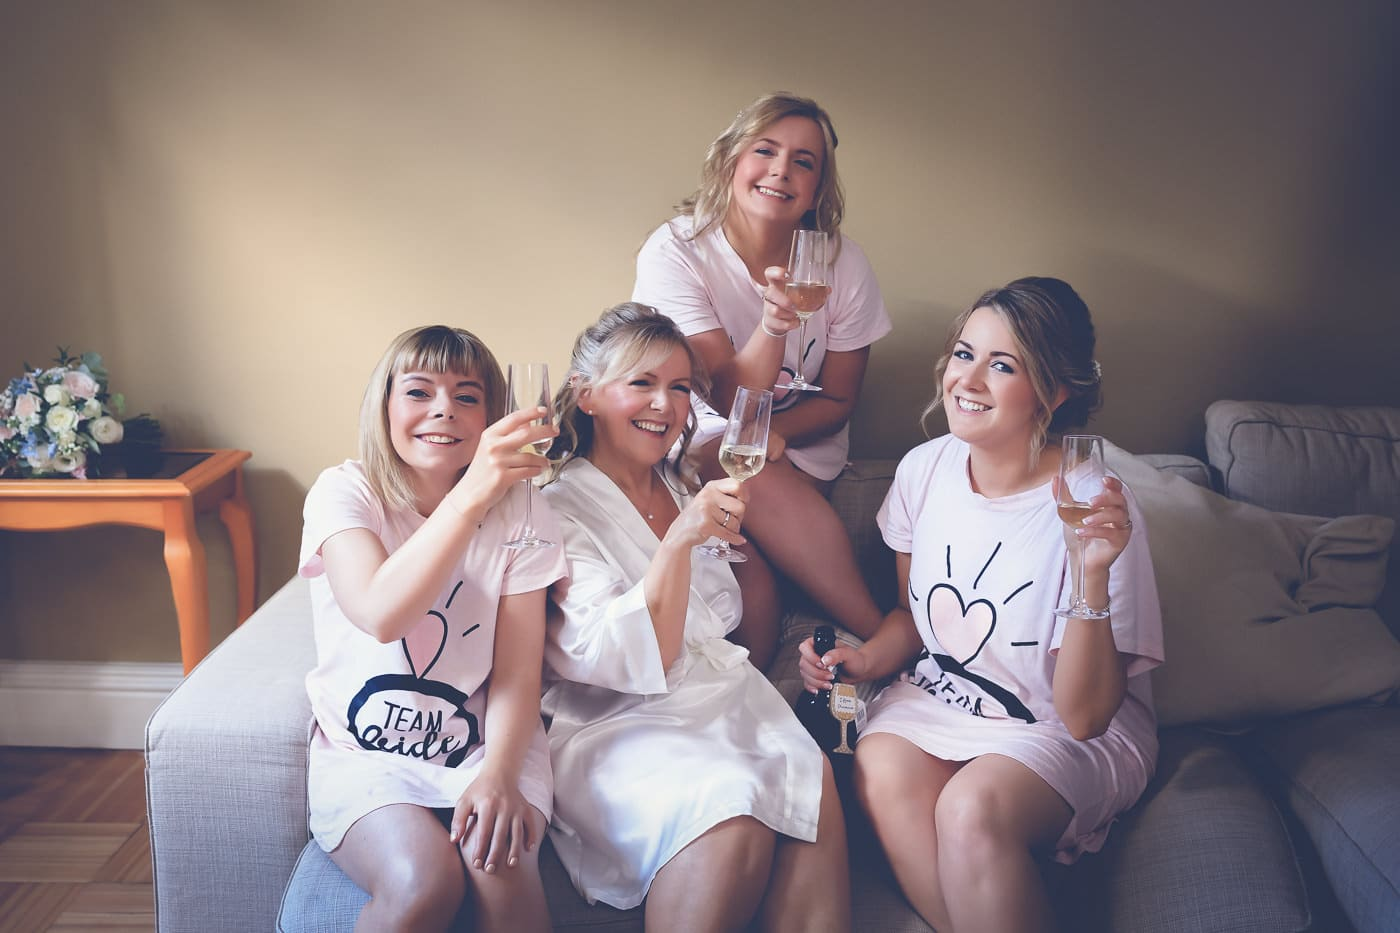 The bridal party during the preparations